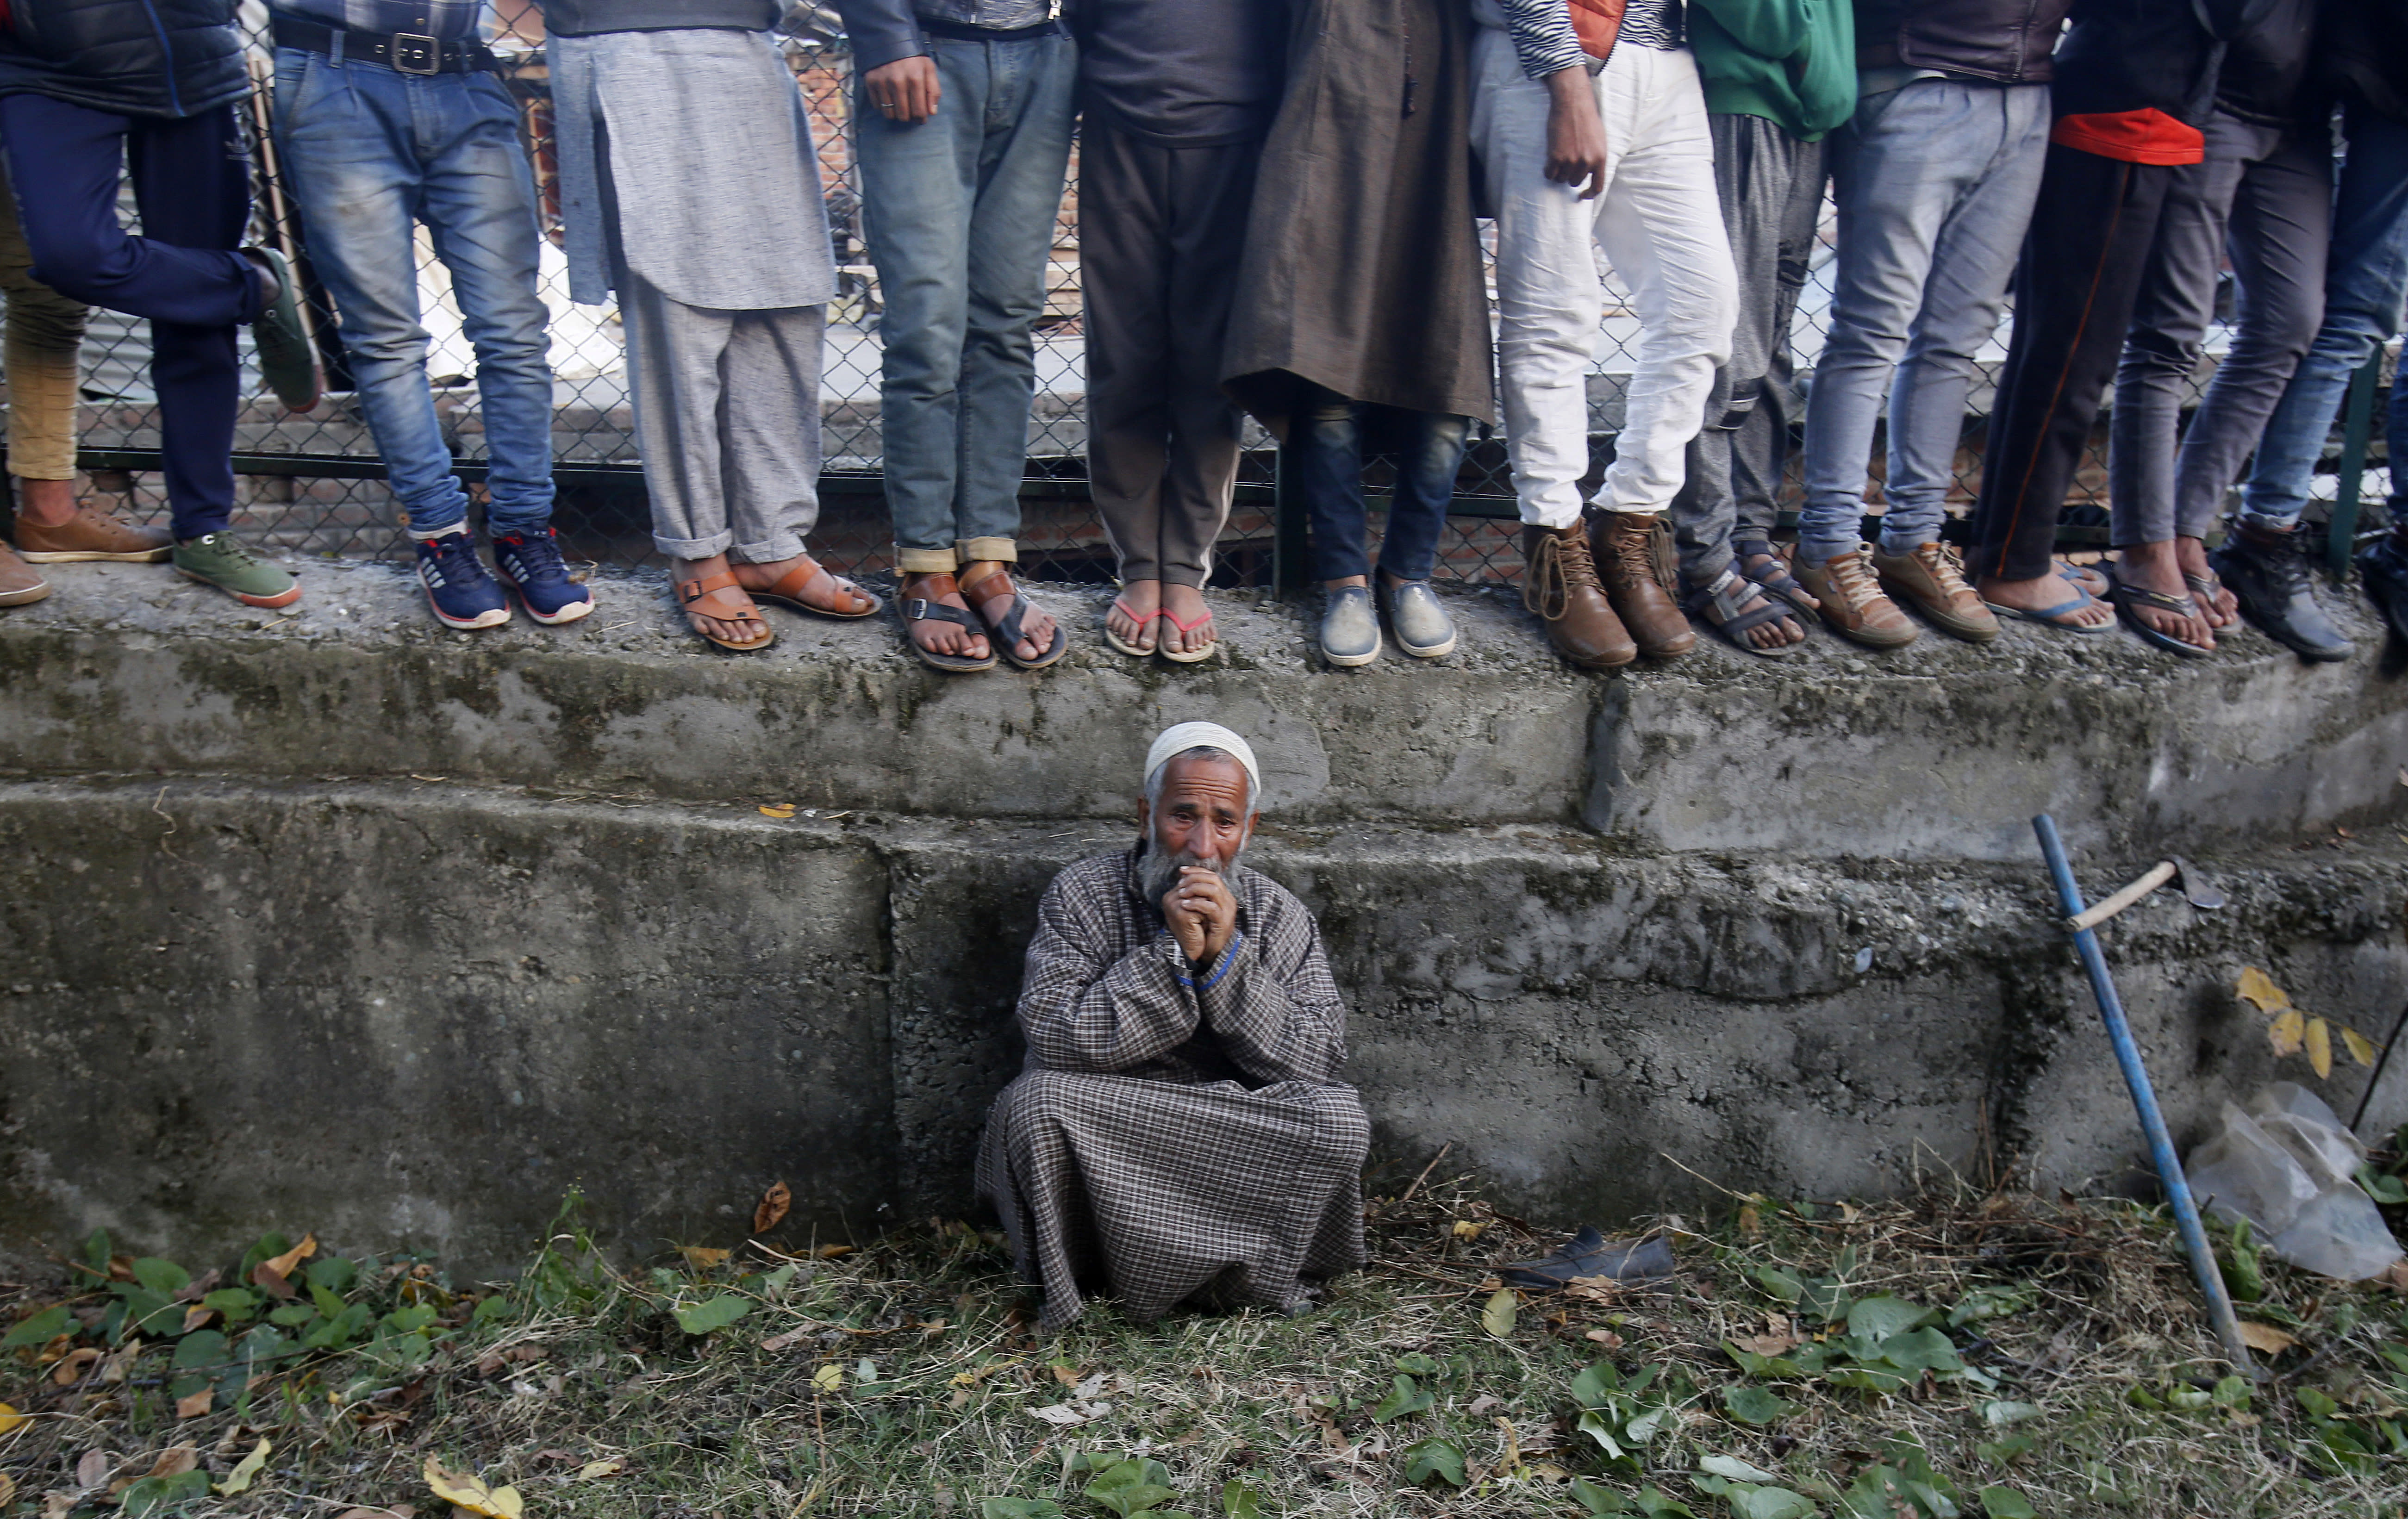 An elderly Kashmiri villager cries during the funeral of Uzair Mushtaq in Kulgam 75 Kilometers south of Srinagar, Indian controlled Kashmir, Sunday, Oct. 21, 2018. Three local rebels were killed in a gunbattle with Indian government forces in disputed Kashmir on Sunday, and six civilians were killed in an explosion at the site after the fighting was over, officials and residents said. (AP Photo/Mukhtar Khan)